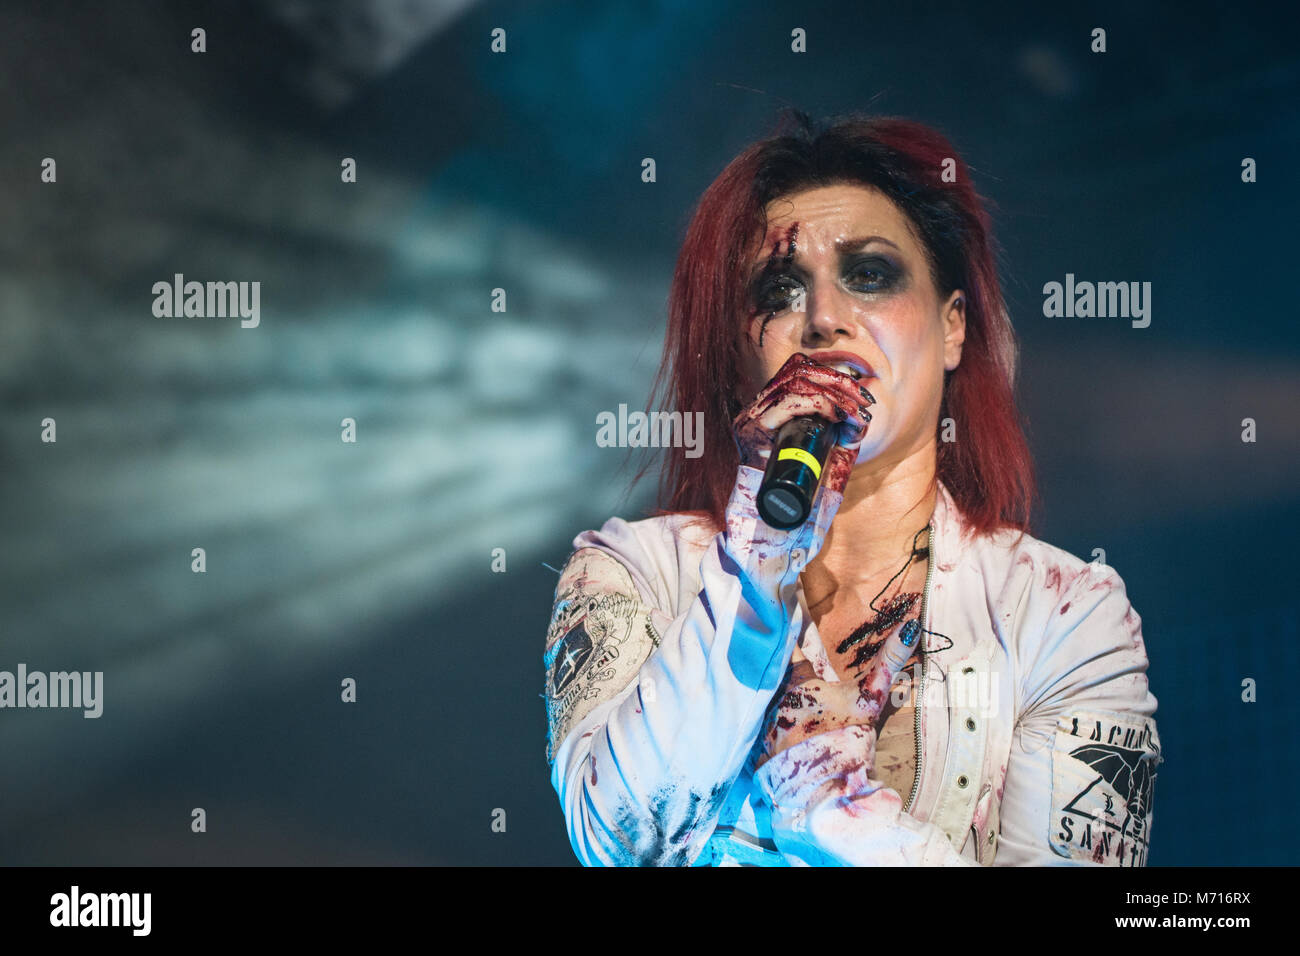 Milan, Italy. 11 November 2016. Italian rock metal band Lacuna Coil performs at Live Music Club. Brambilla Simone - Stock Image